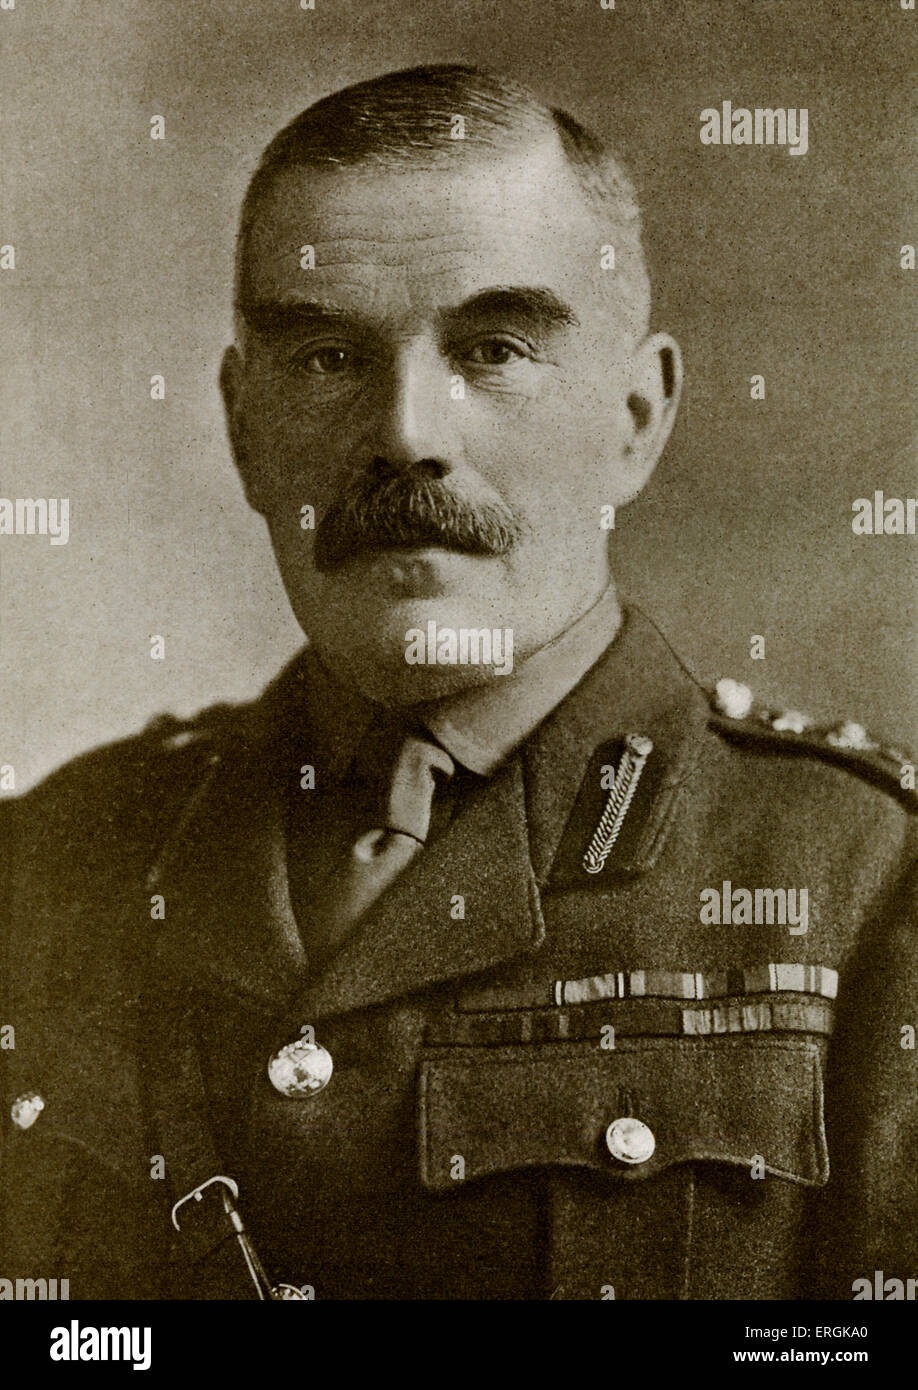 General Sir. William Robertson (1860-1933), Chief of the Imperial General Staff between 1916-1918. Stock Photo